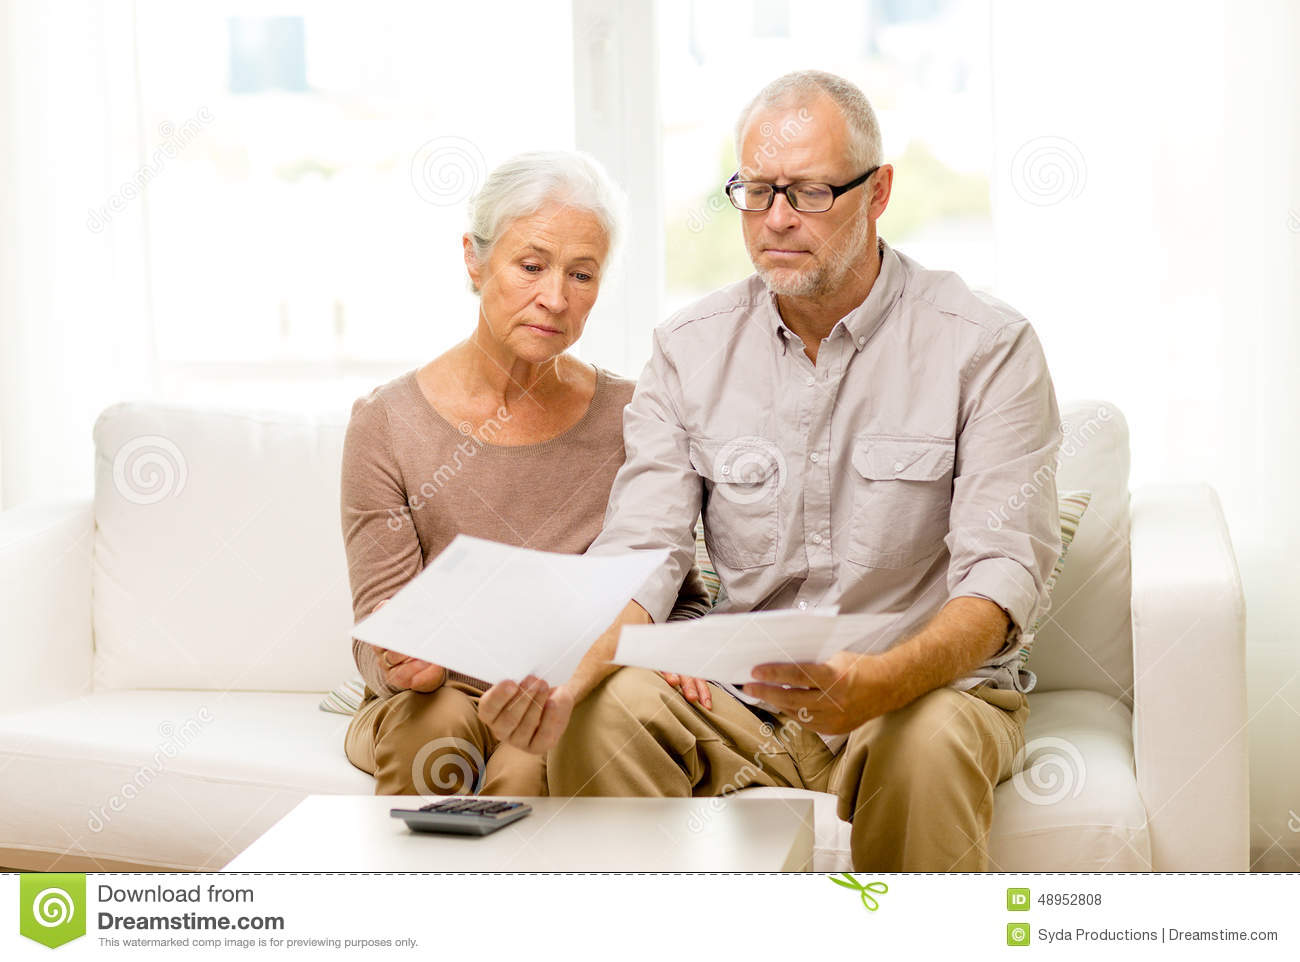 essays on aging parents How to care for aging parents a one-stop resource for all your medical, financial, housing, and emotional issues caring for an elderly parent can be rewarding, but it can also be completely.